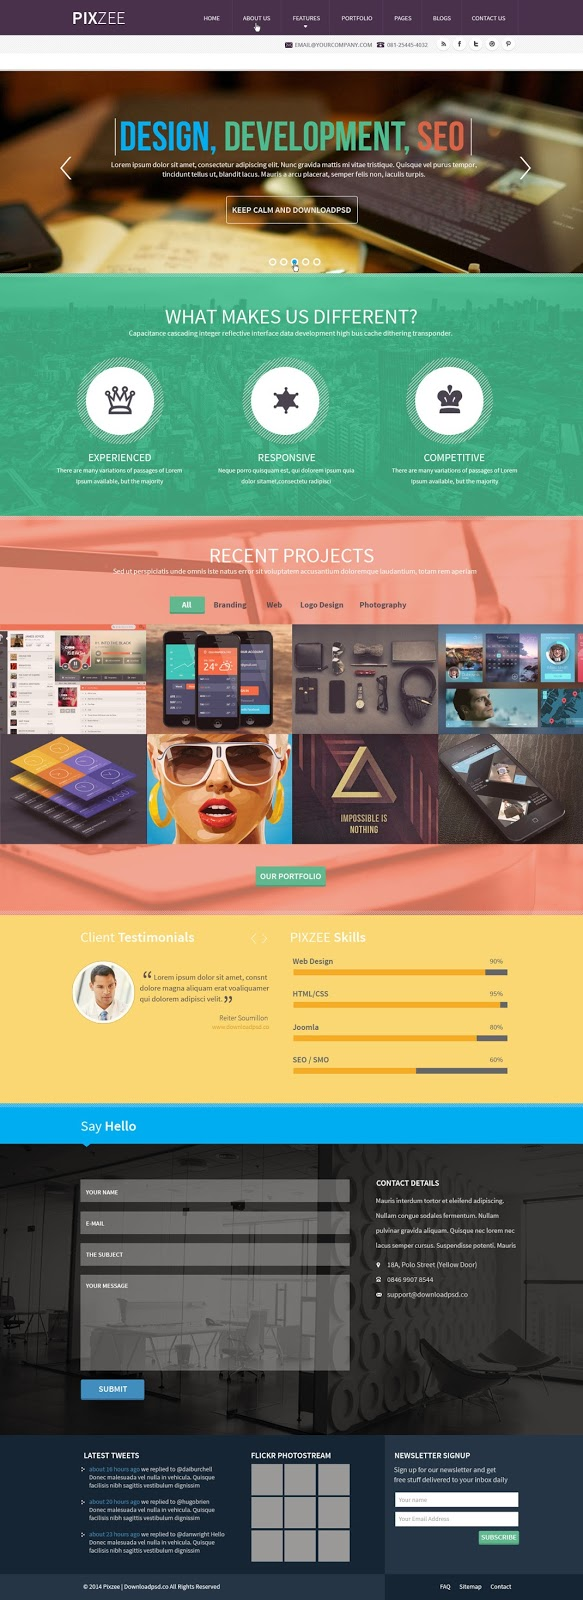 Pixzee Single Page Free PSD Personal Website